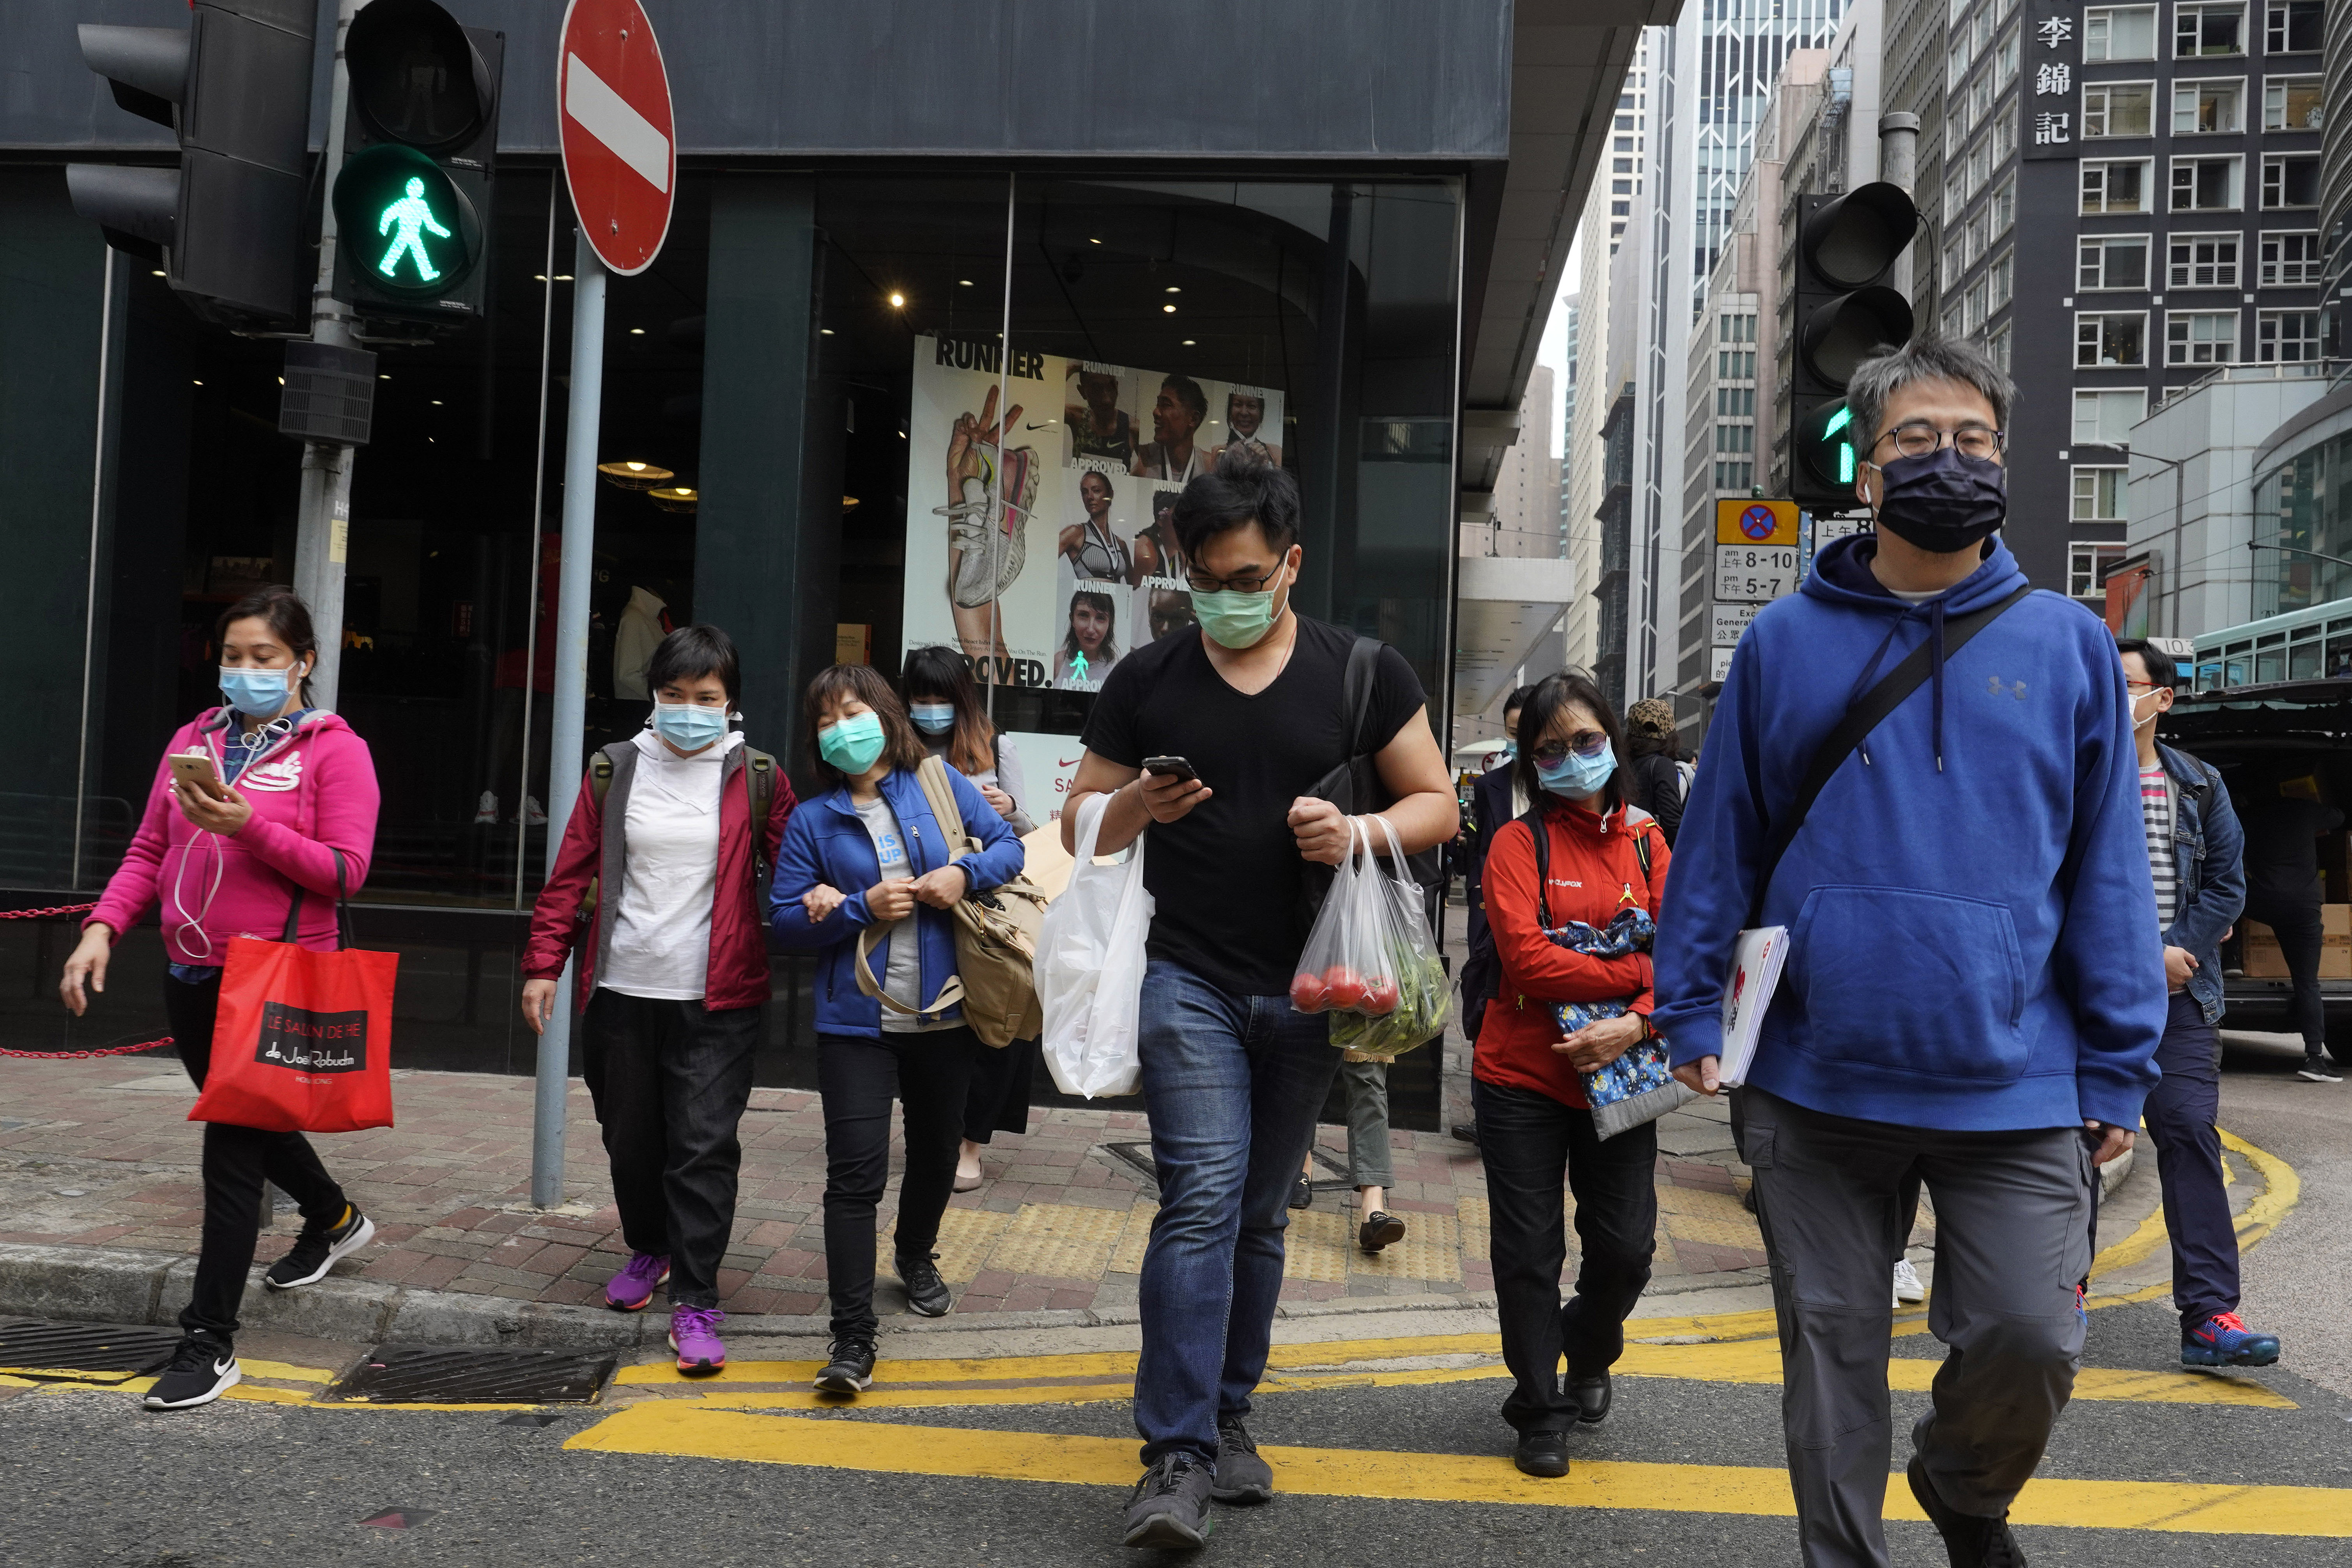 People wearing face masks walk on a street in Hong Kong Tuesday